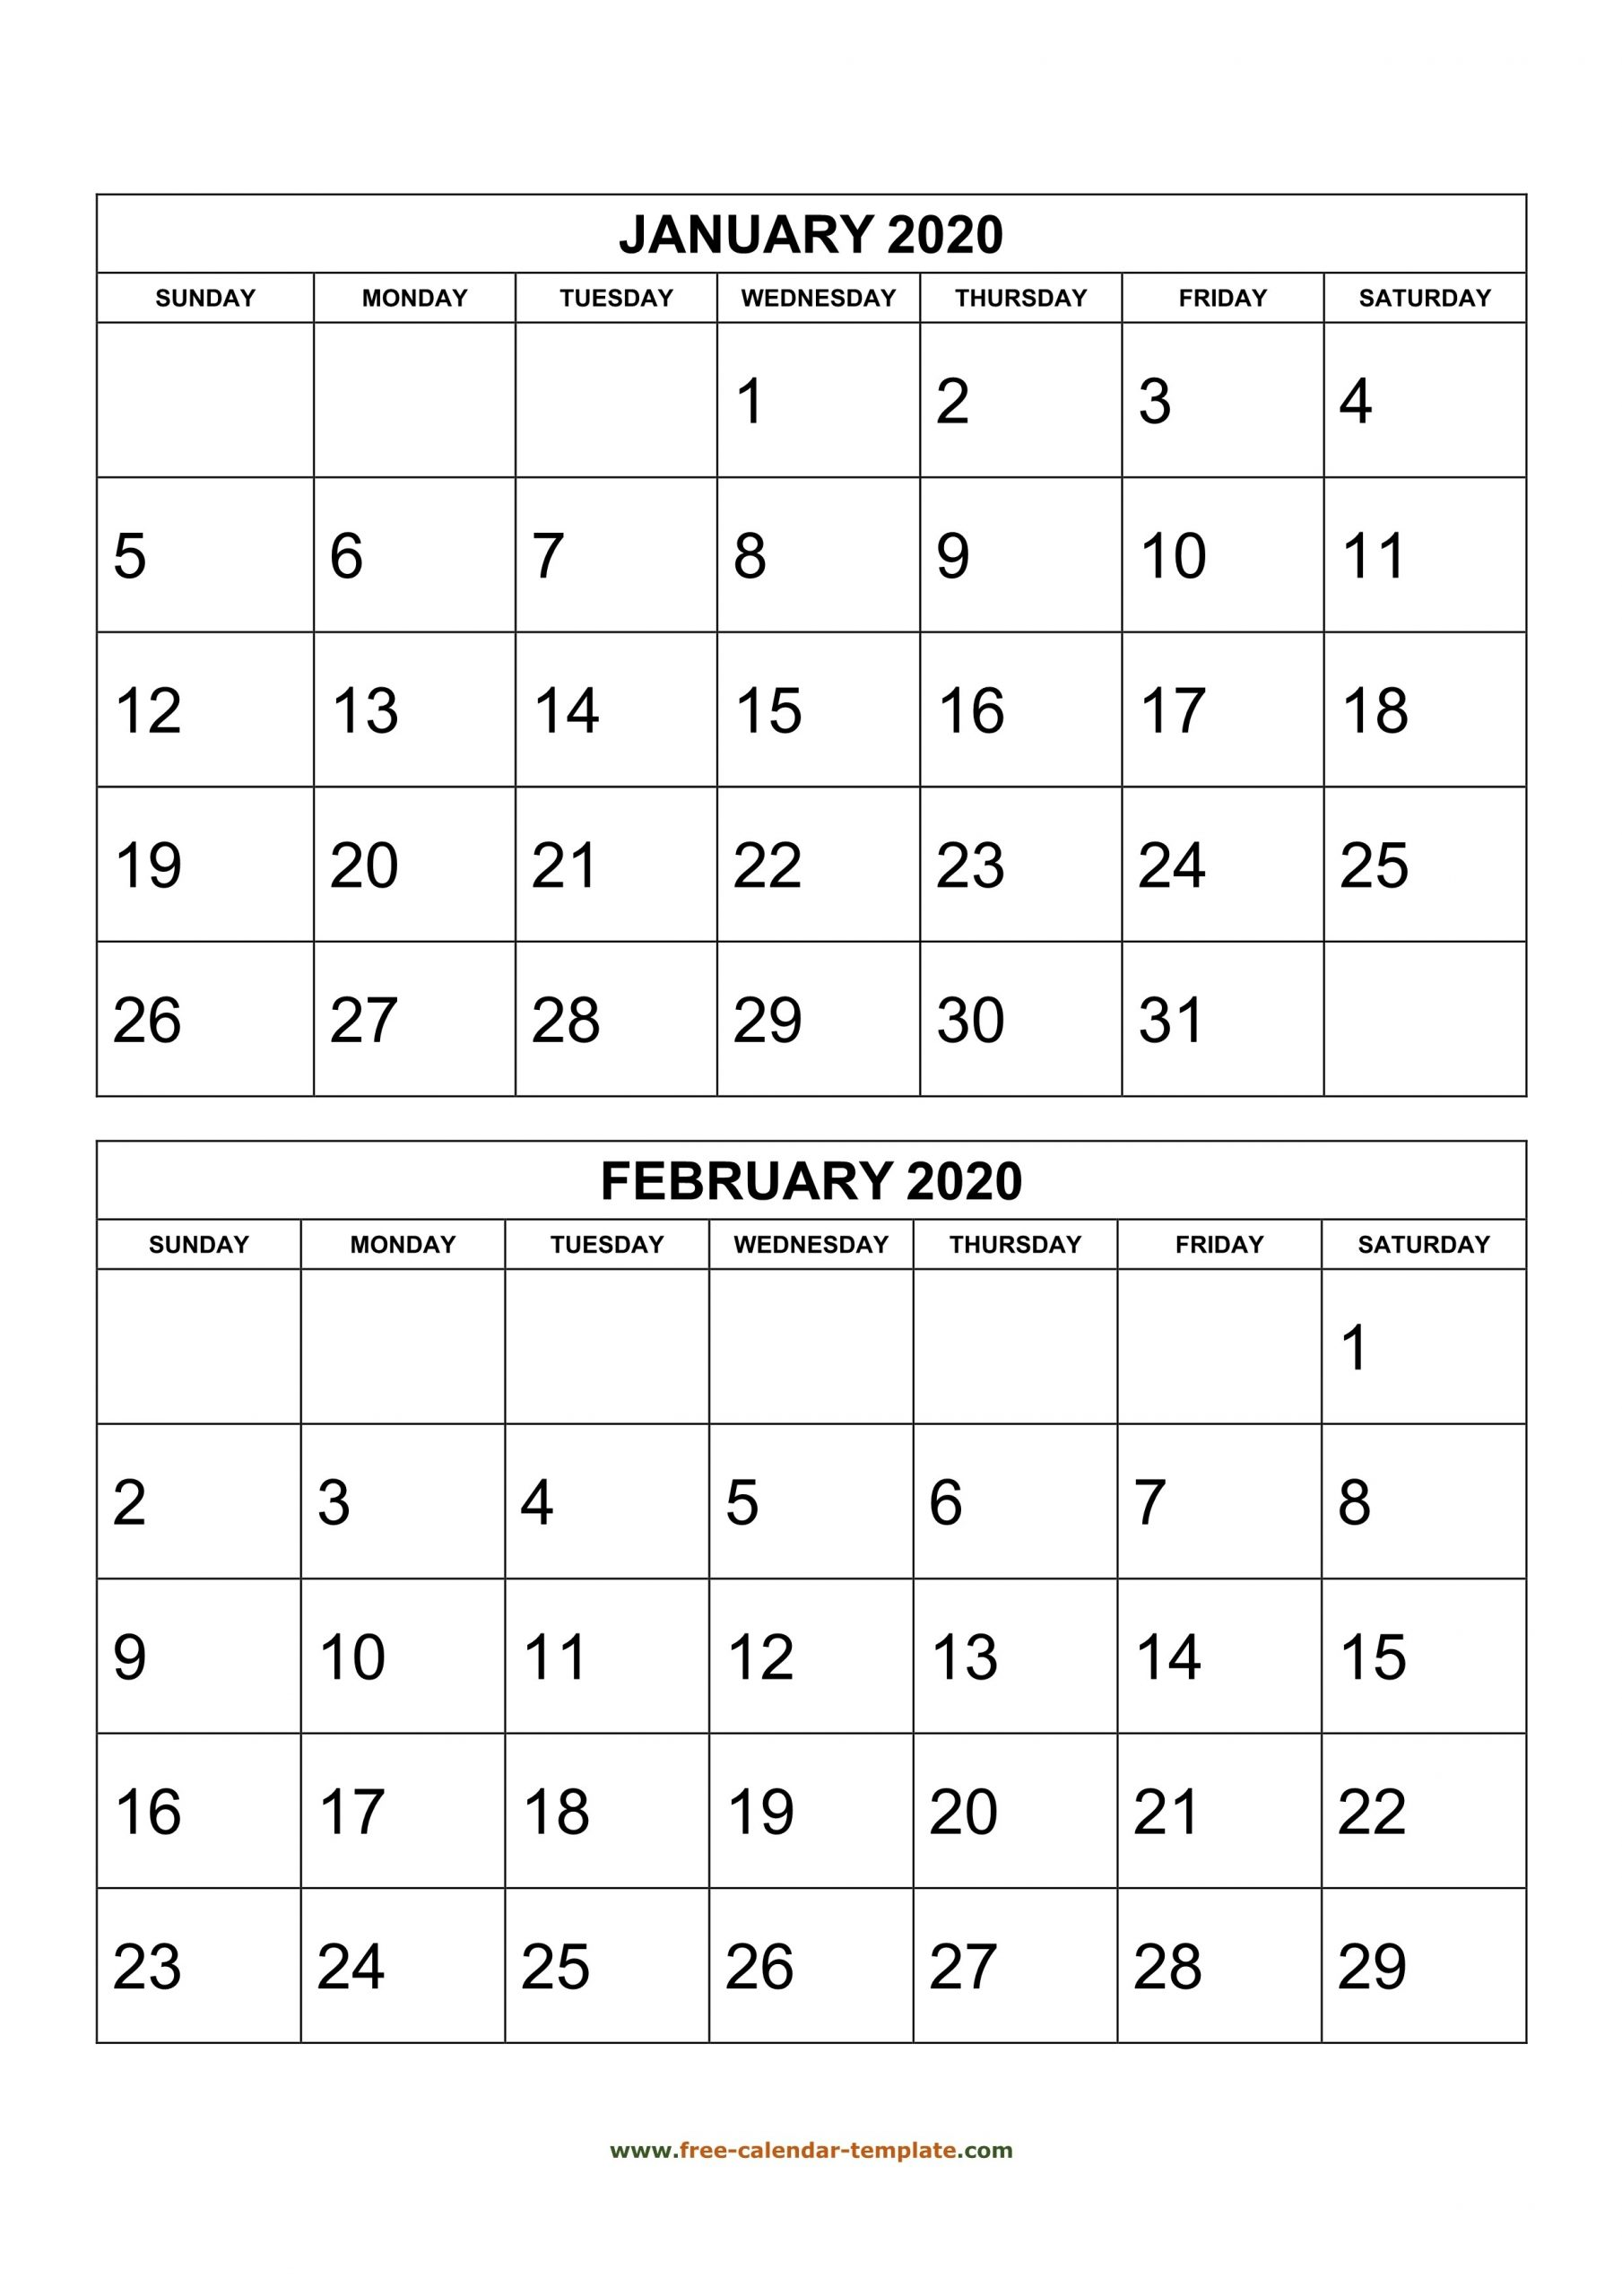 Monthly Calendar 2020, 2 Months Per Page (Vertical) | Free  Printable 2 Month Calendar